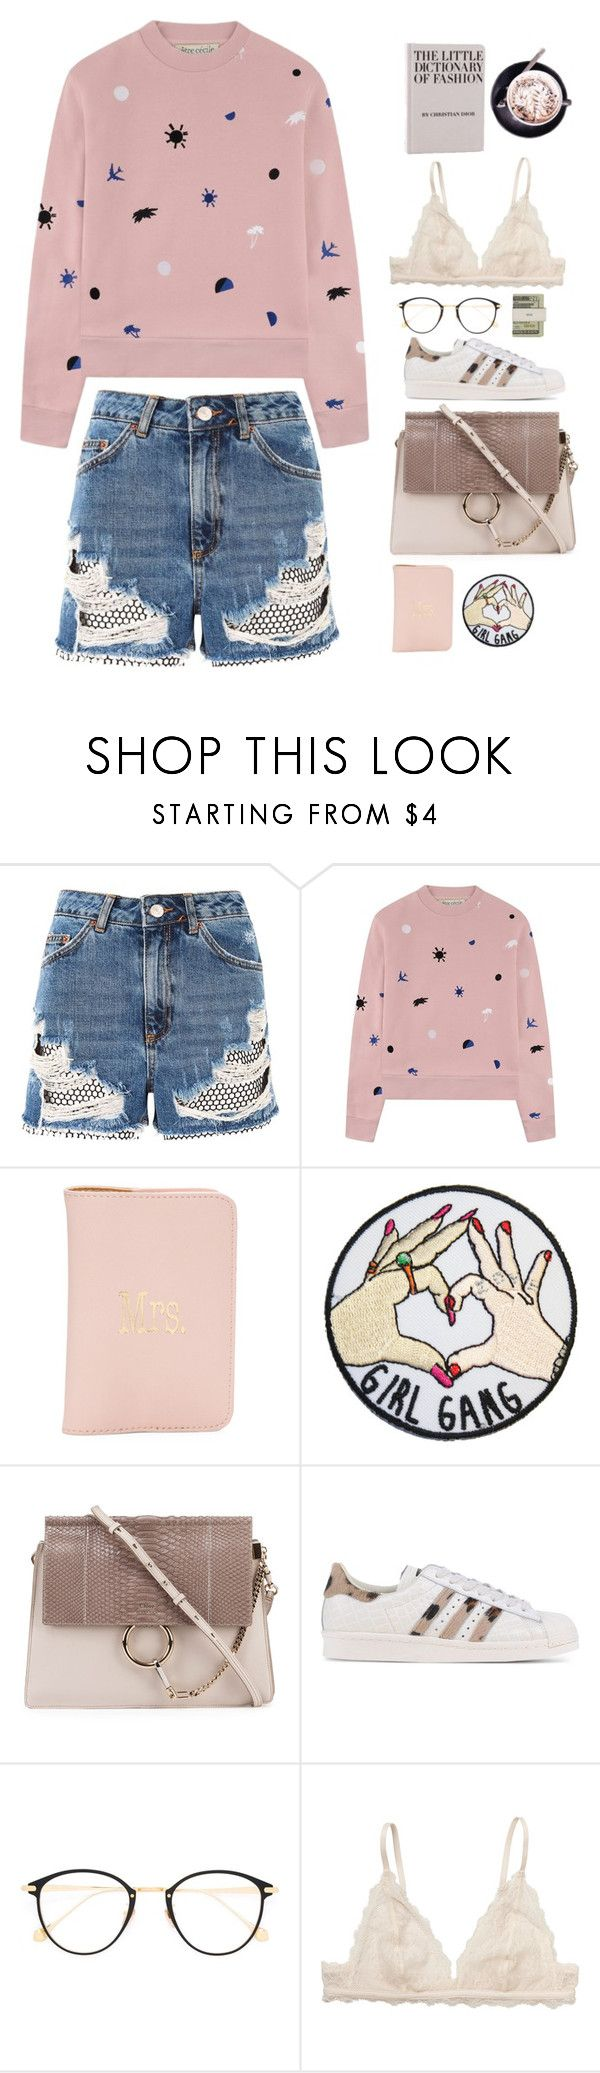 """Untitled #2901"" by wtf-towear ❤ liked on Polyvore featuring Topshop, Être Cécile, Chloé, adidas Originals, Frency & Mercury, Jack Spade and Monki"